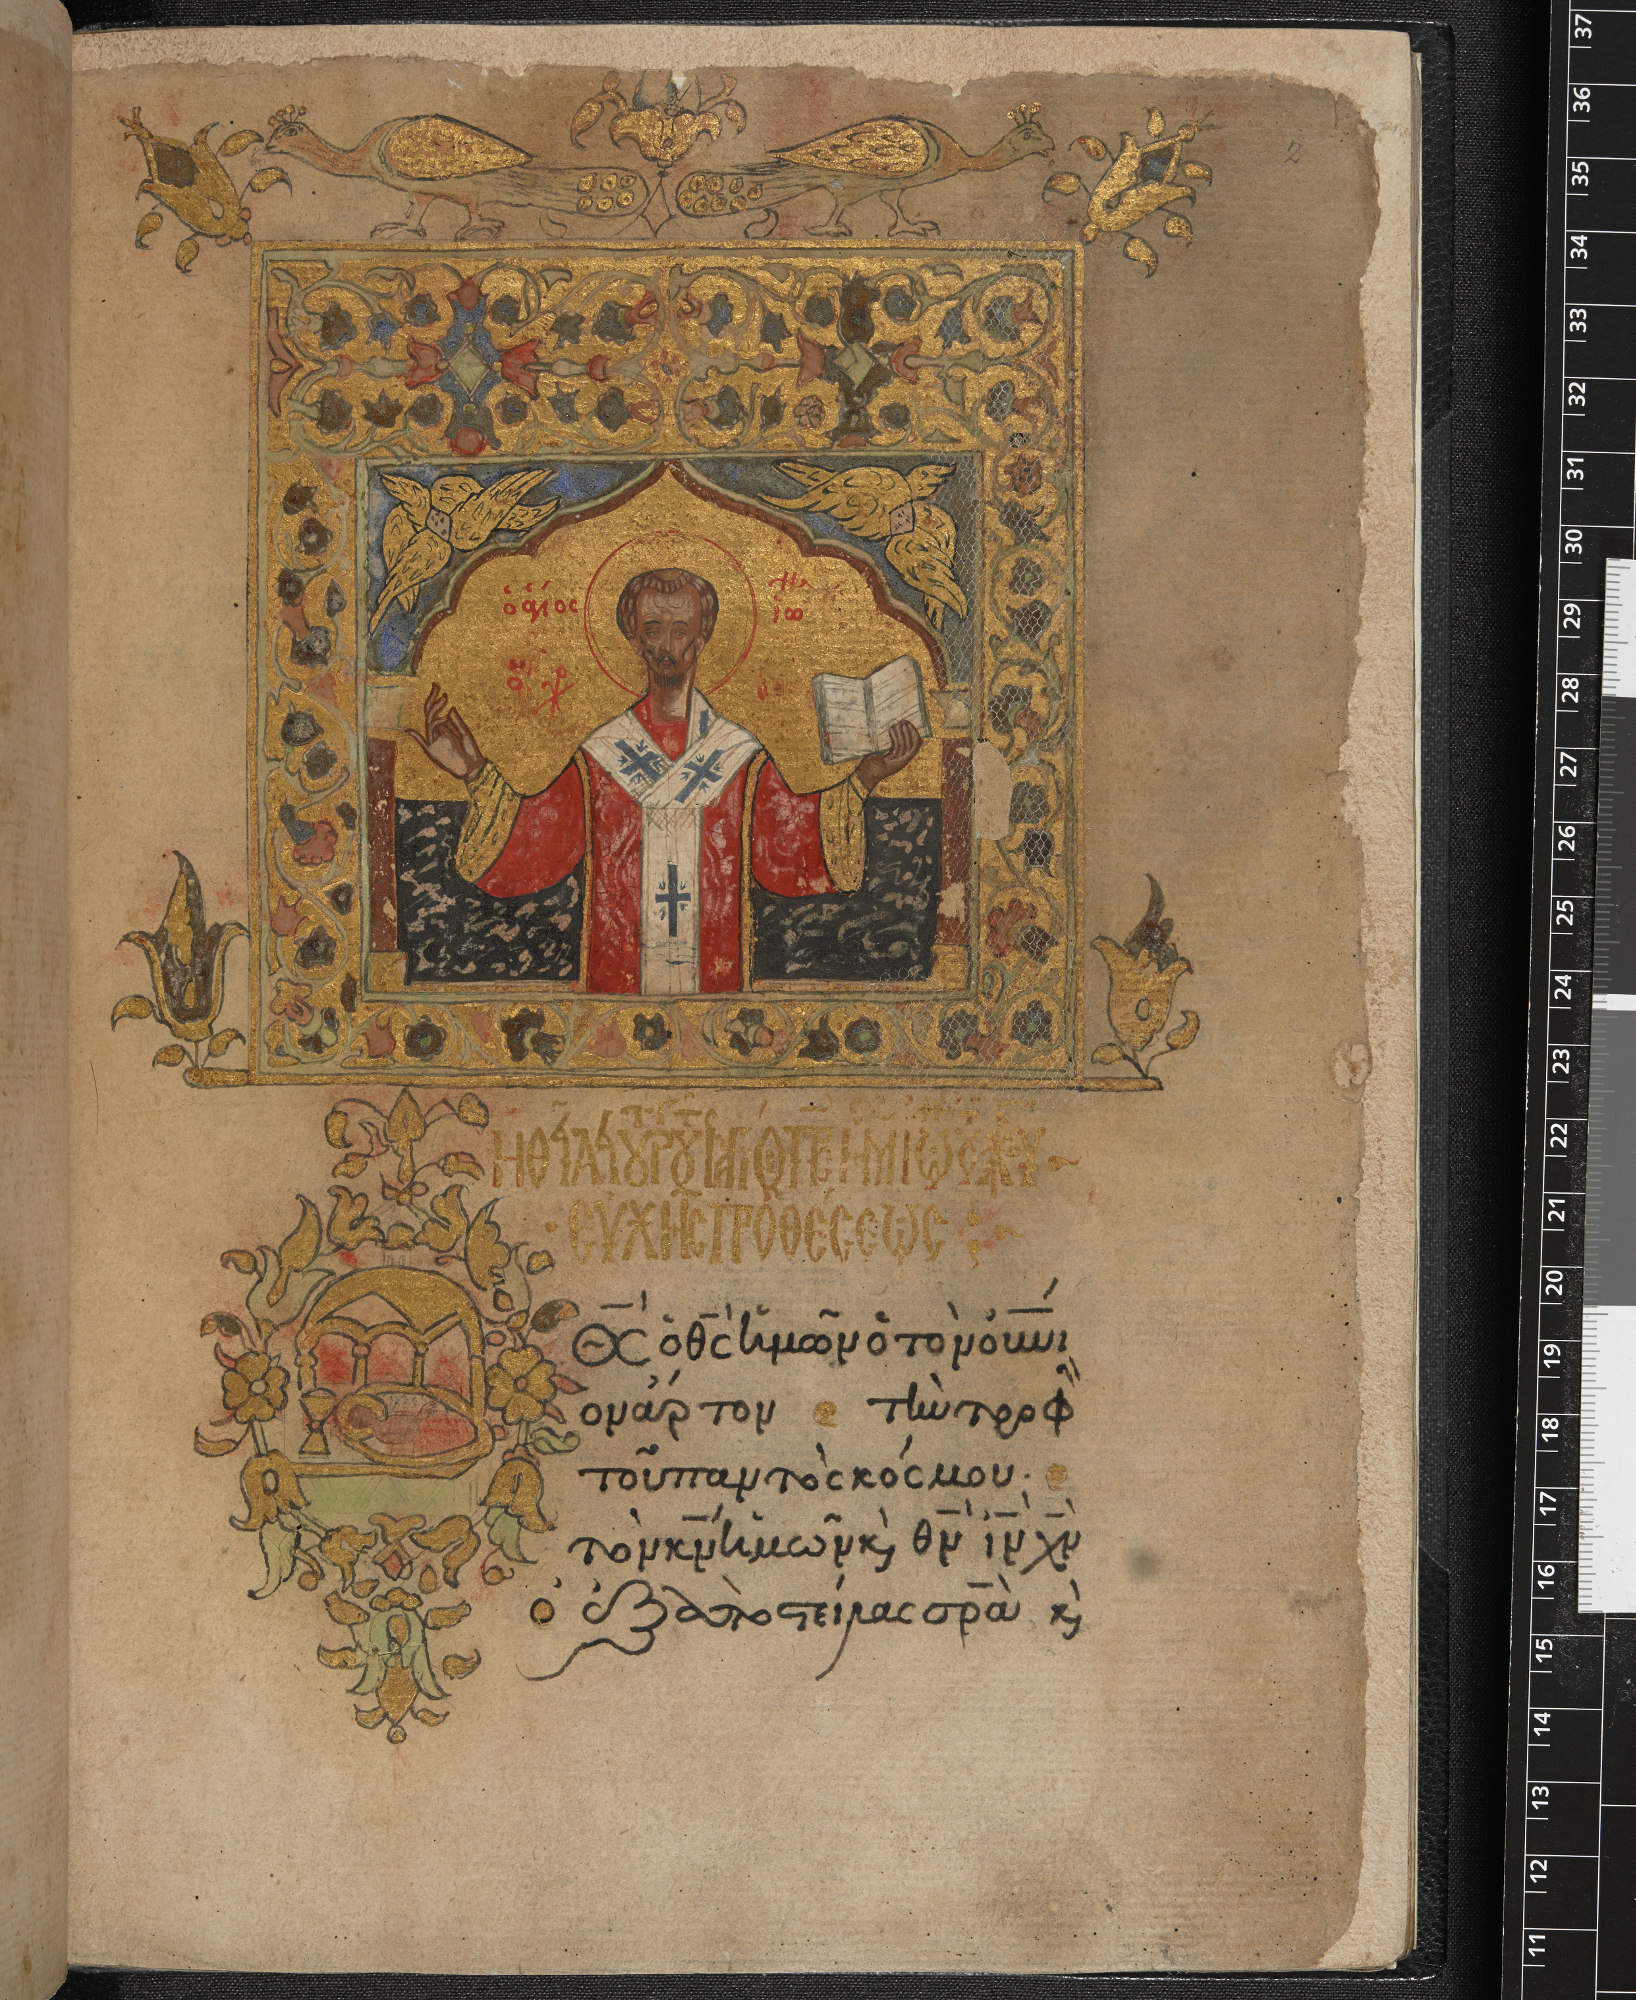 Illuminated Manuscript of the Divine Liturgies (Add MS 40755 f002r)